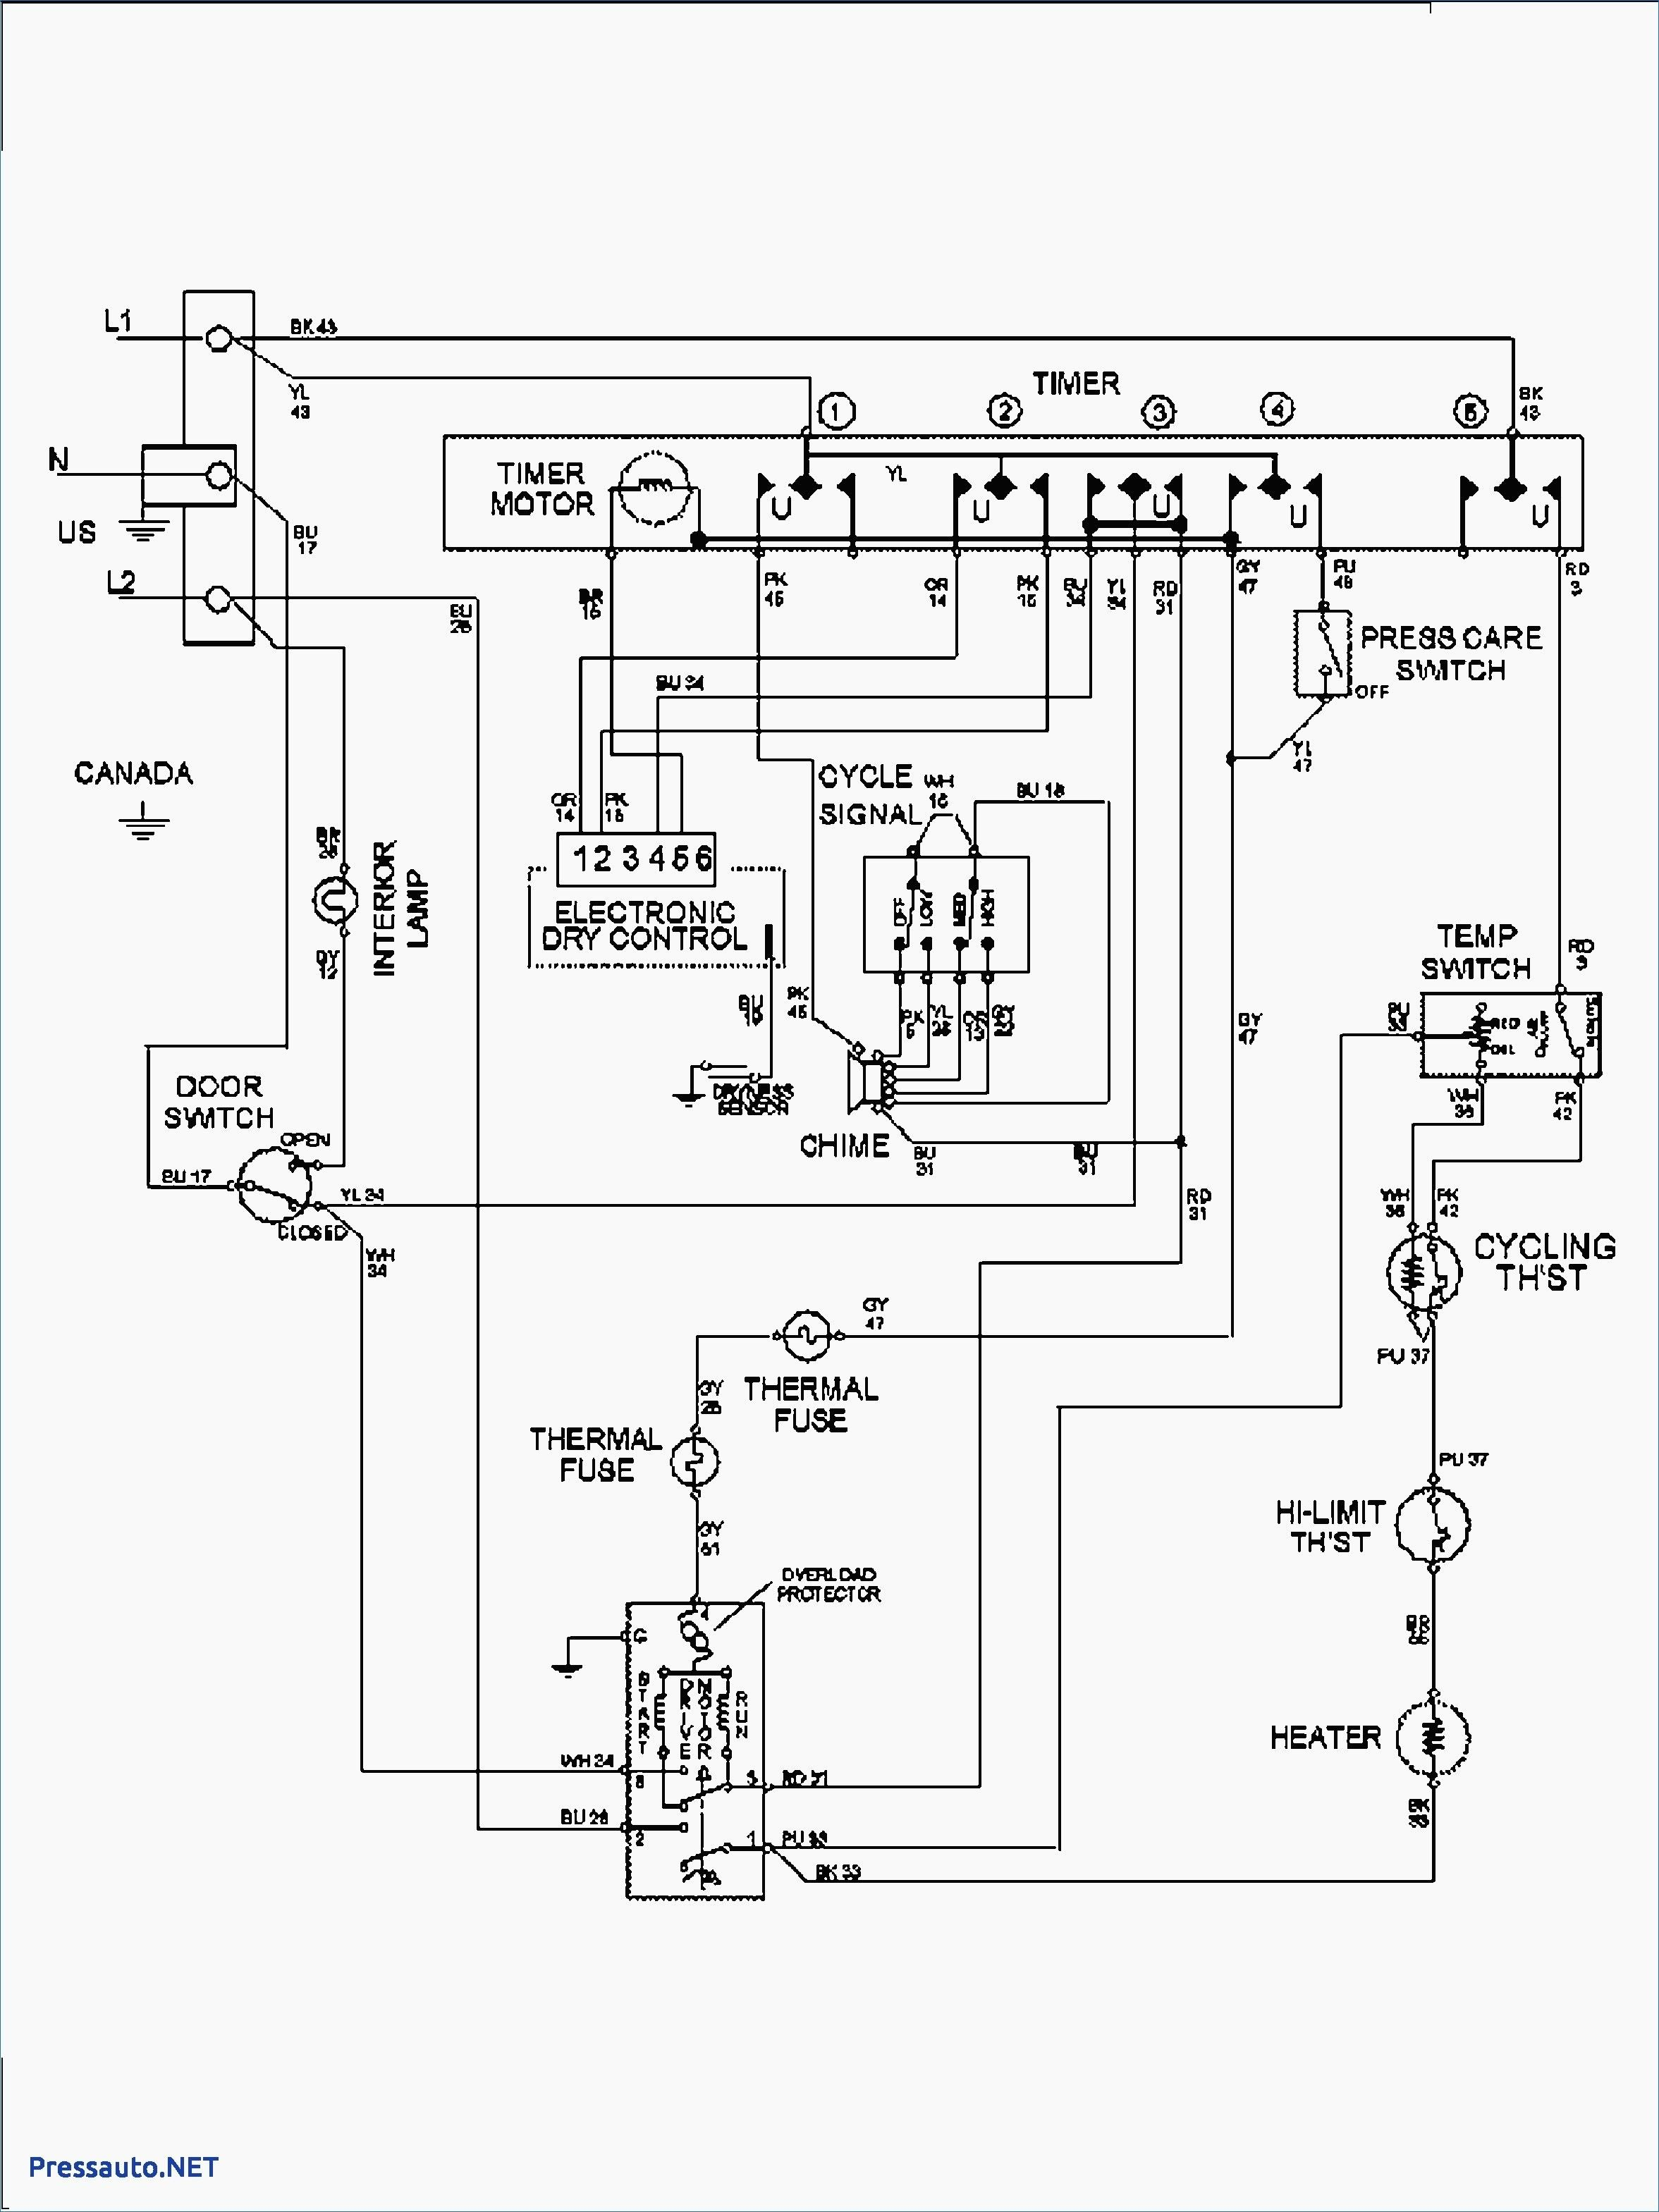 New Modra Generator Wiring Diagram Diagram Diagramsample Diagramtemplate Check More At Https Morningculture Co Mod Electric Dryers Maytag Dryer Dryer Plug